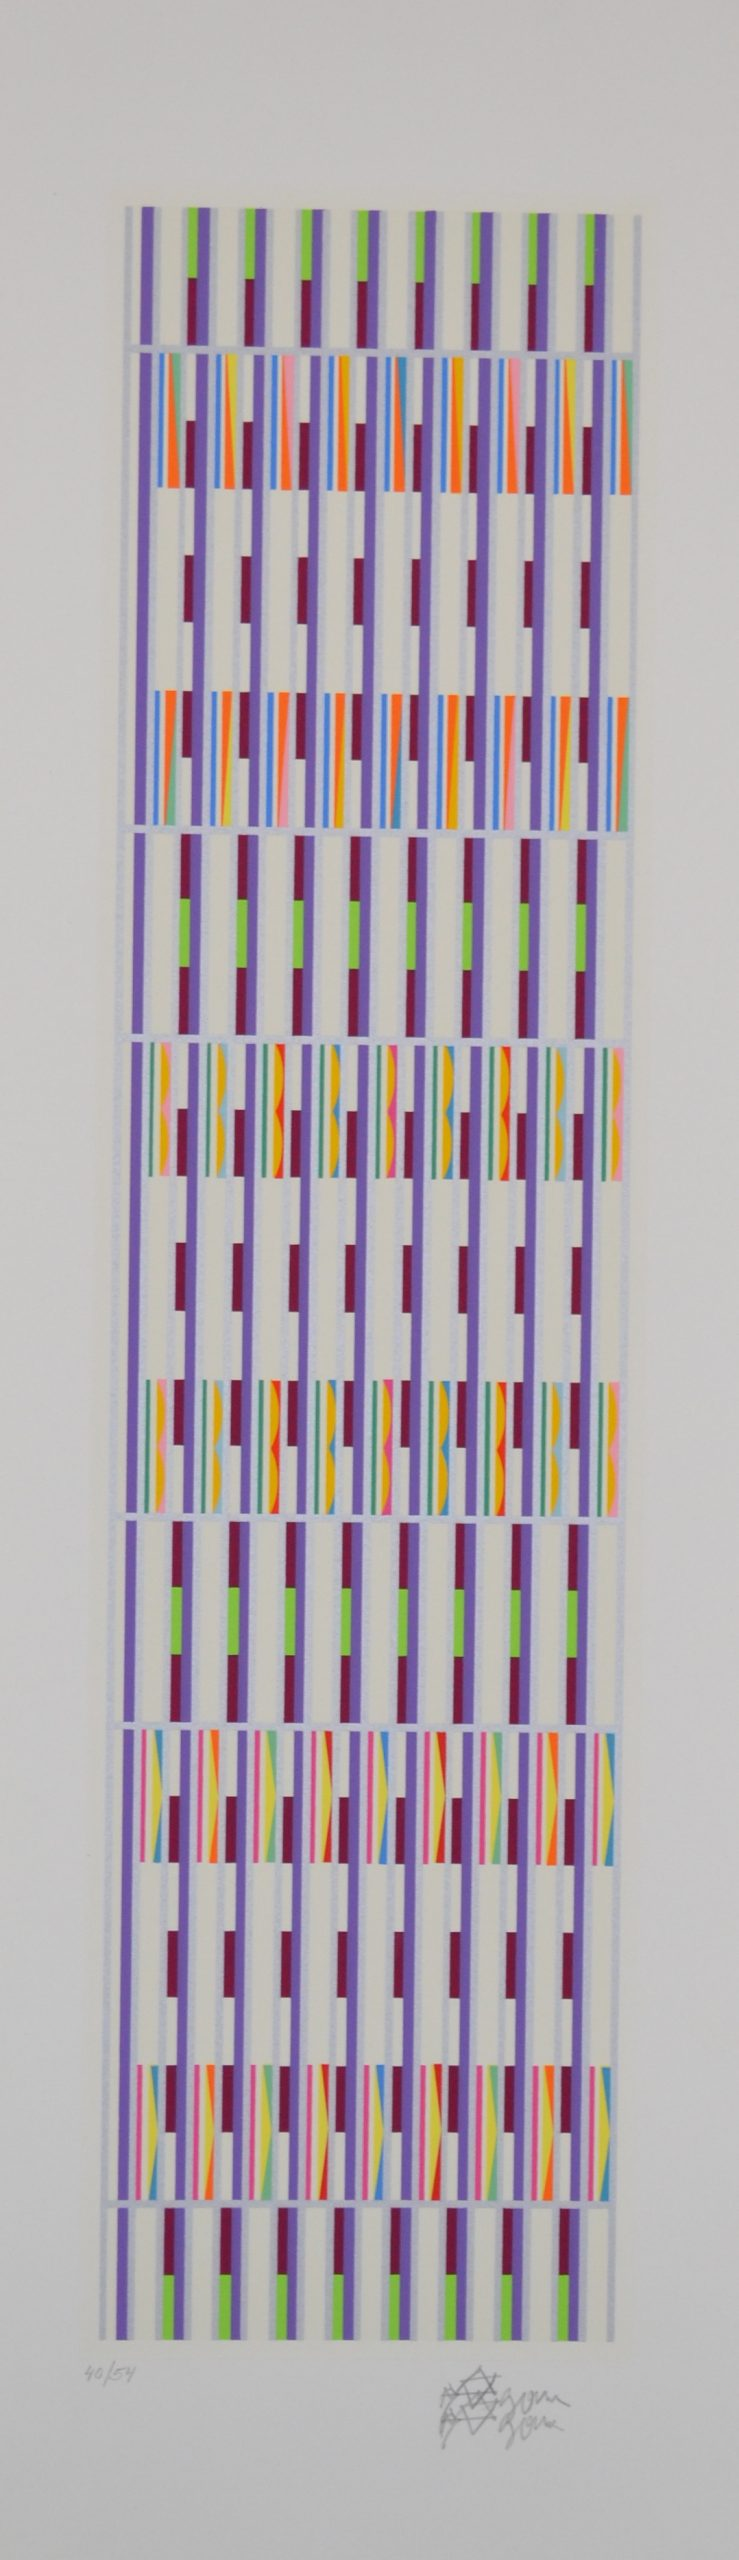 Vertical Orchestration Purple by Yaacov Agam